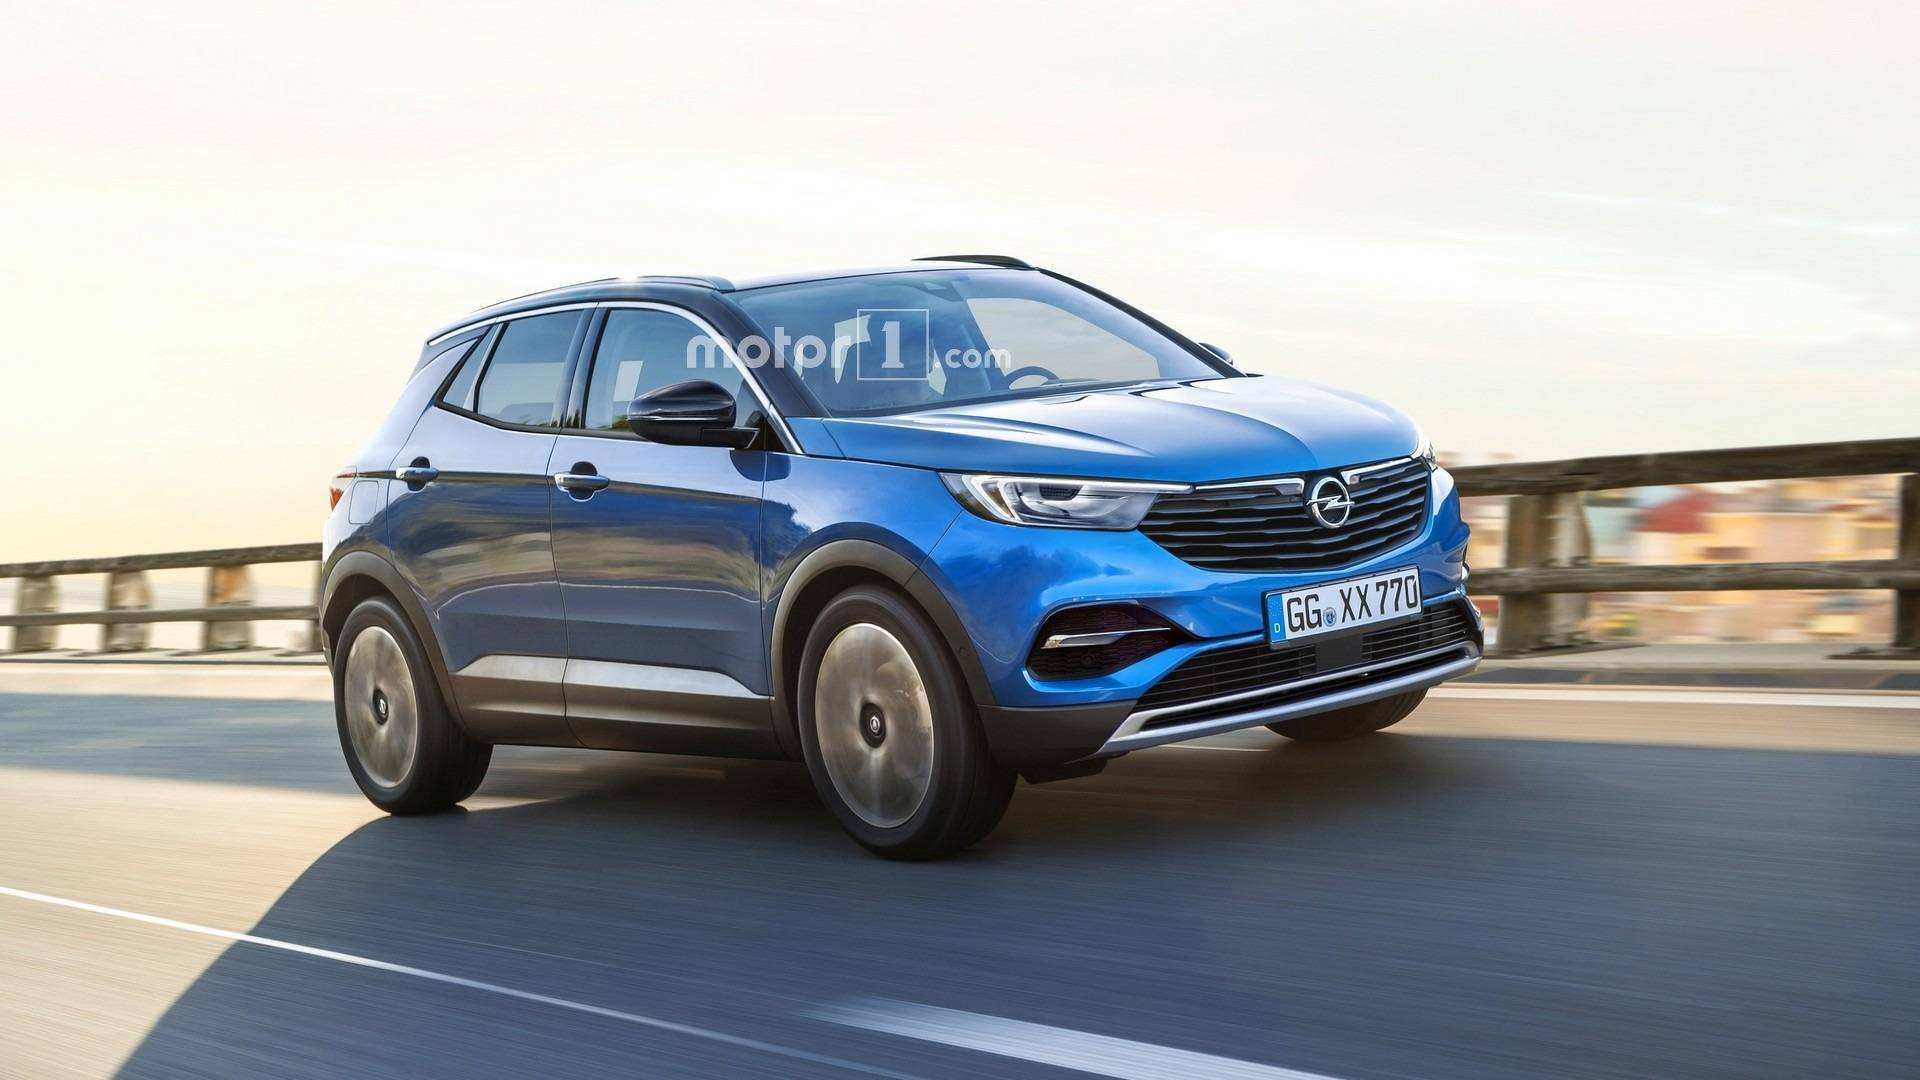 91 Gallery of Nuova Opel Mokka X 2020 Pricing with Nuova Opel Mokka X 2020